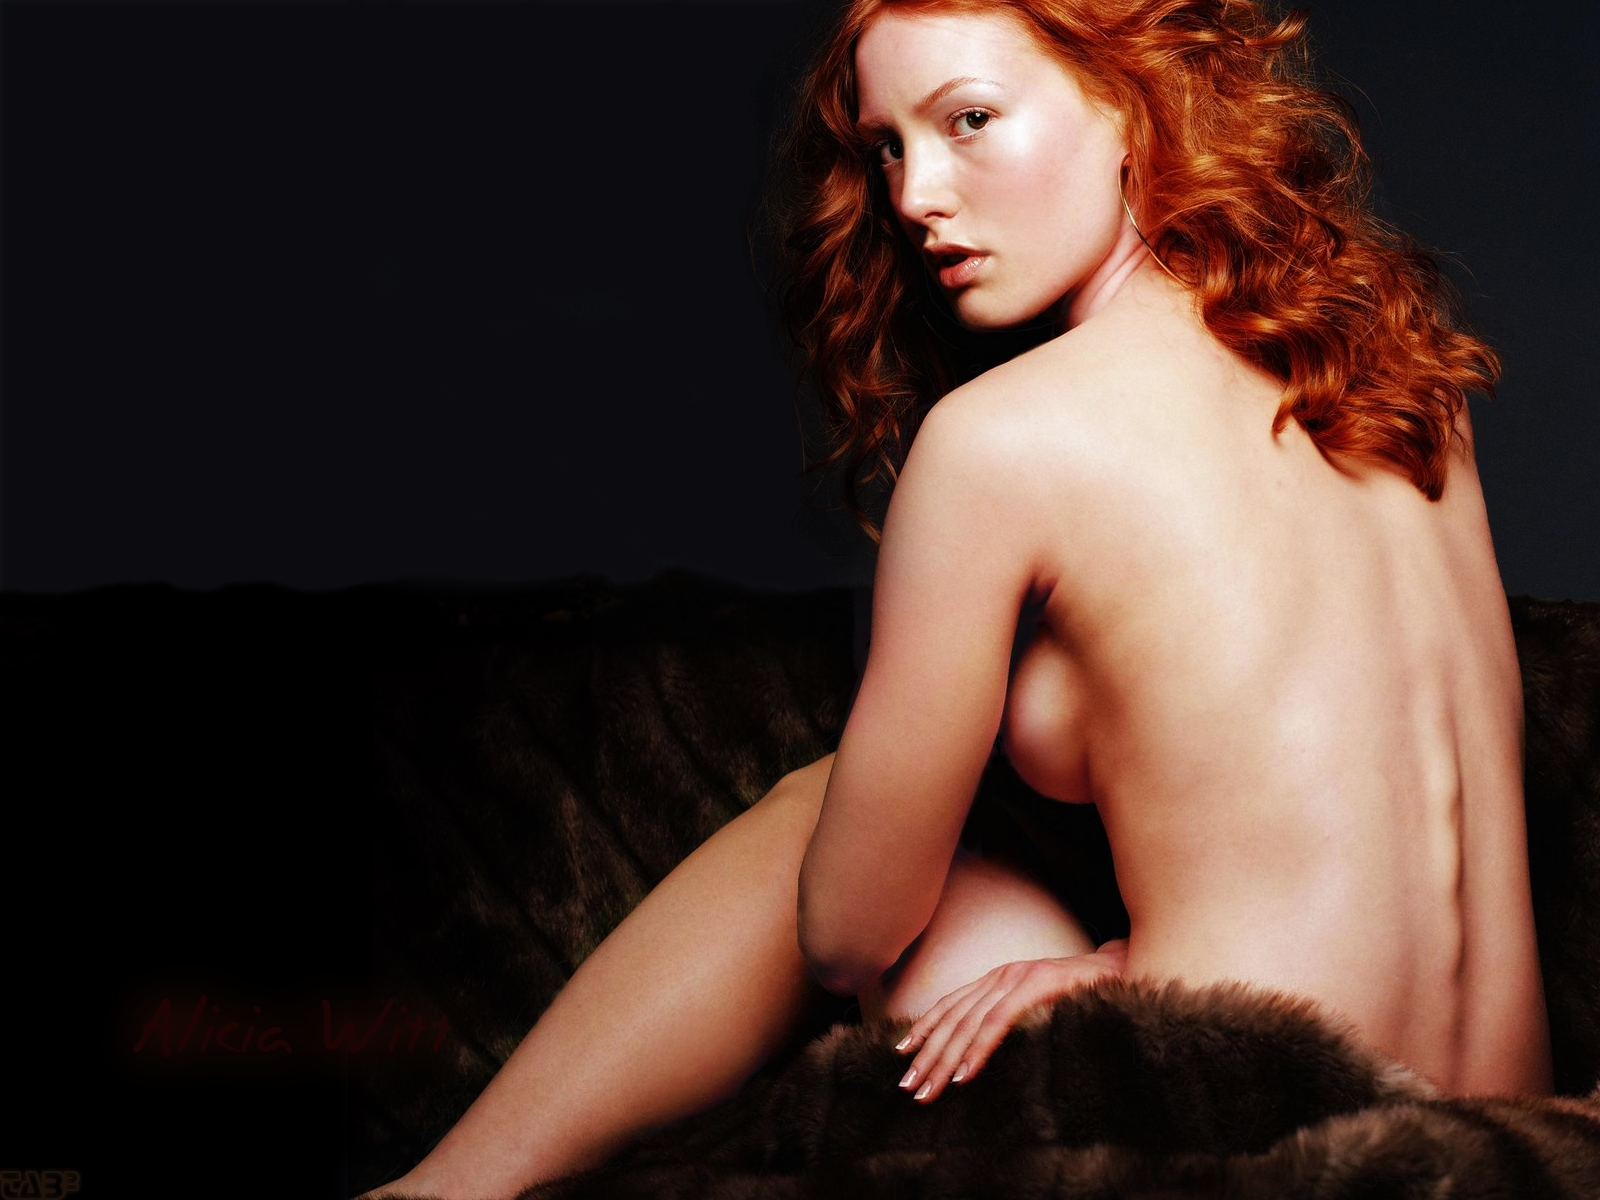 alicia witt photoalicia witt walking dead, alicia witt foto, alicia witt photo, alicia witt supernatural, alicia witt wiki, alicia witt films, alicia witt wdw, alicia witt that's incredible, alicia witt album, alicia witt instagram, alicia witt 2016, alicia witt boyfriend husband, alicia witt music, alicia witt wikipedia, alicia witt fansite, alicia witt nibelungen